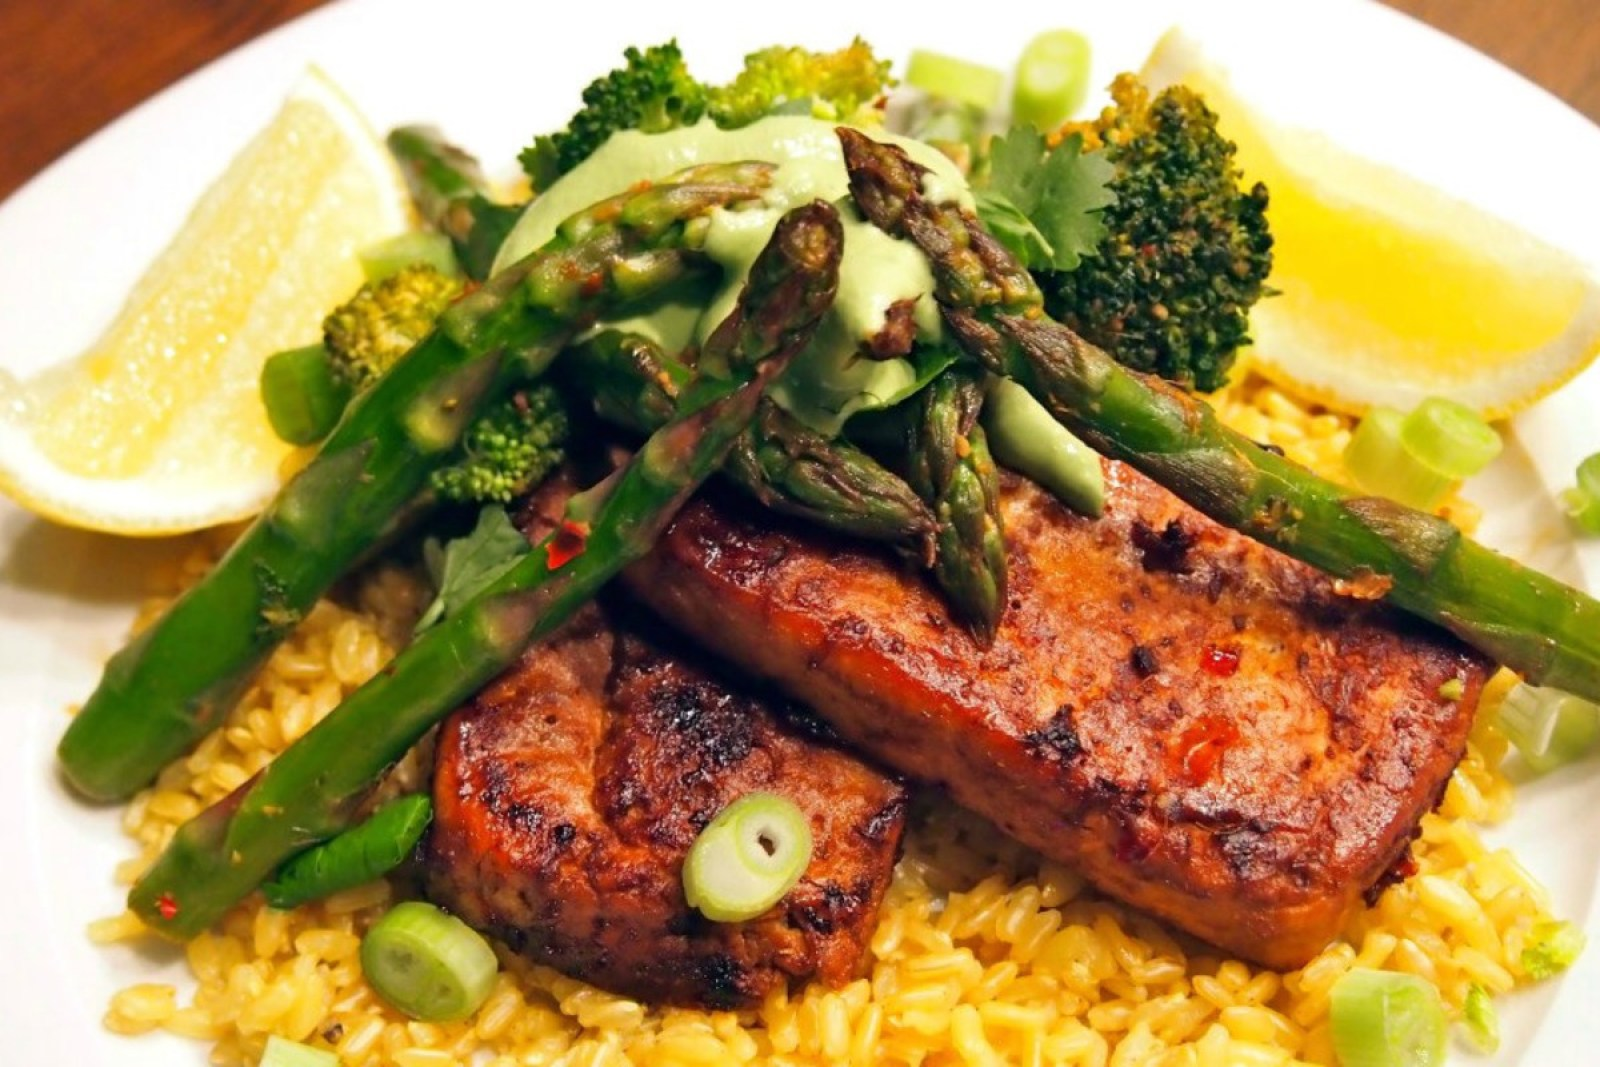 Pan-Fried Tofu Steaks With Coriander Cream and Asparagus Spears